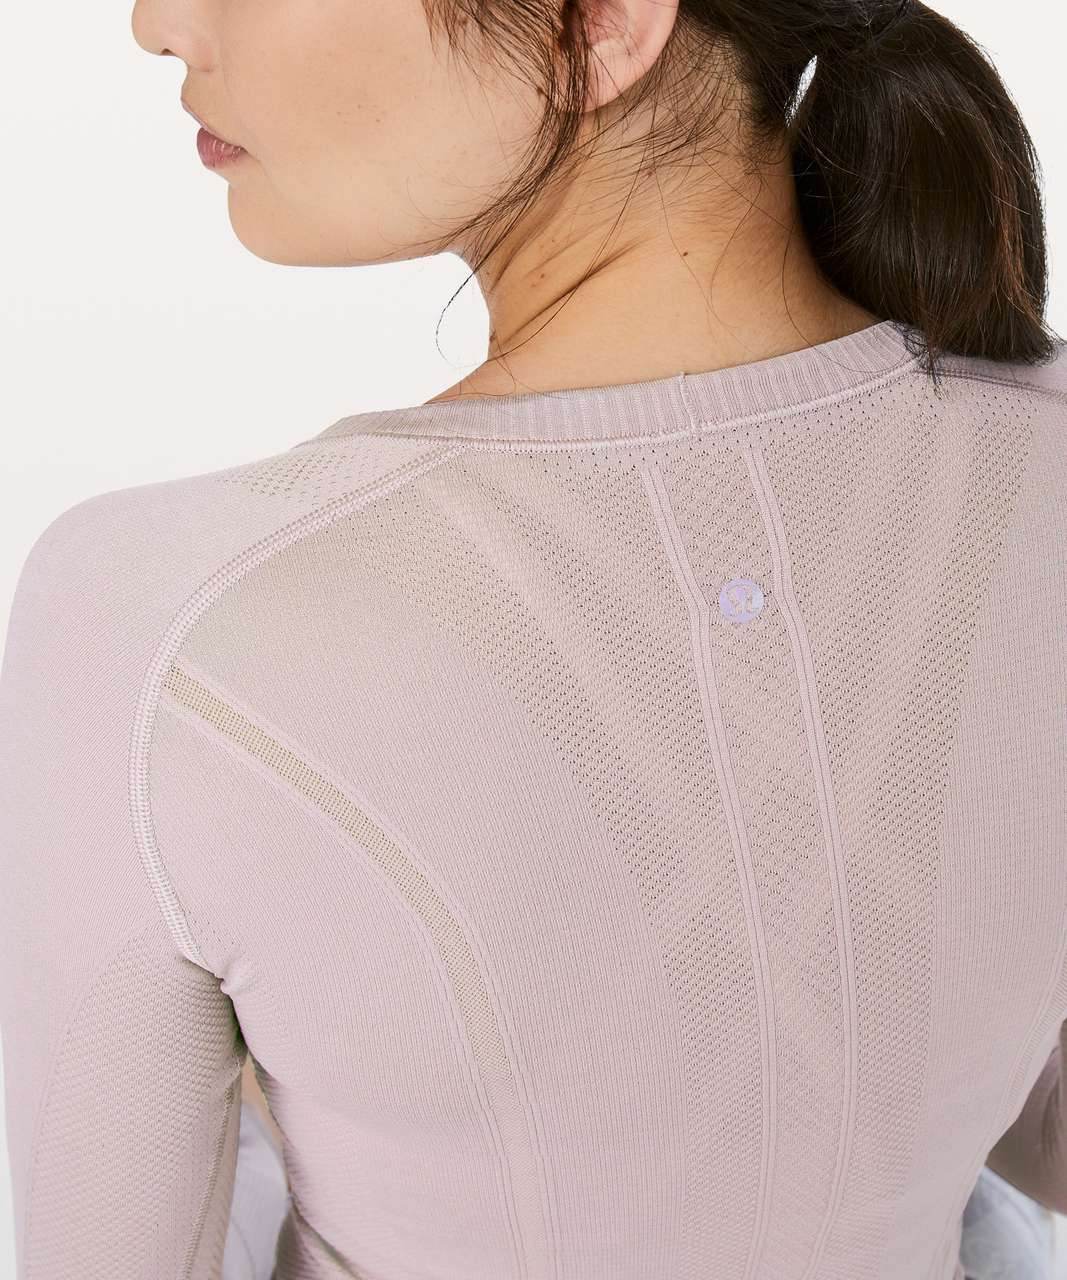 Lululemon Swiftly Tech Long Sleeve Crew - Smoky Blush / Smoky Blush